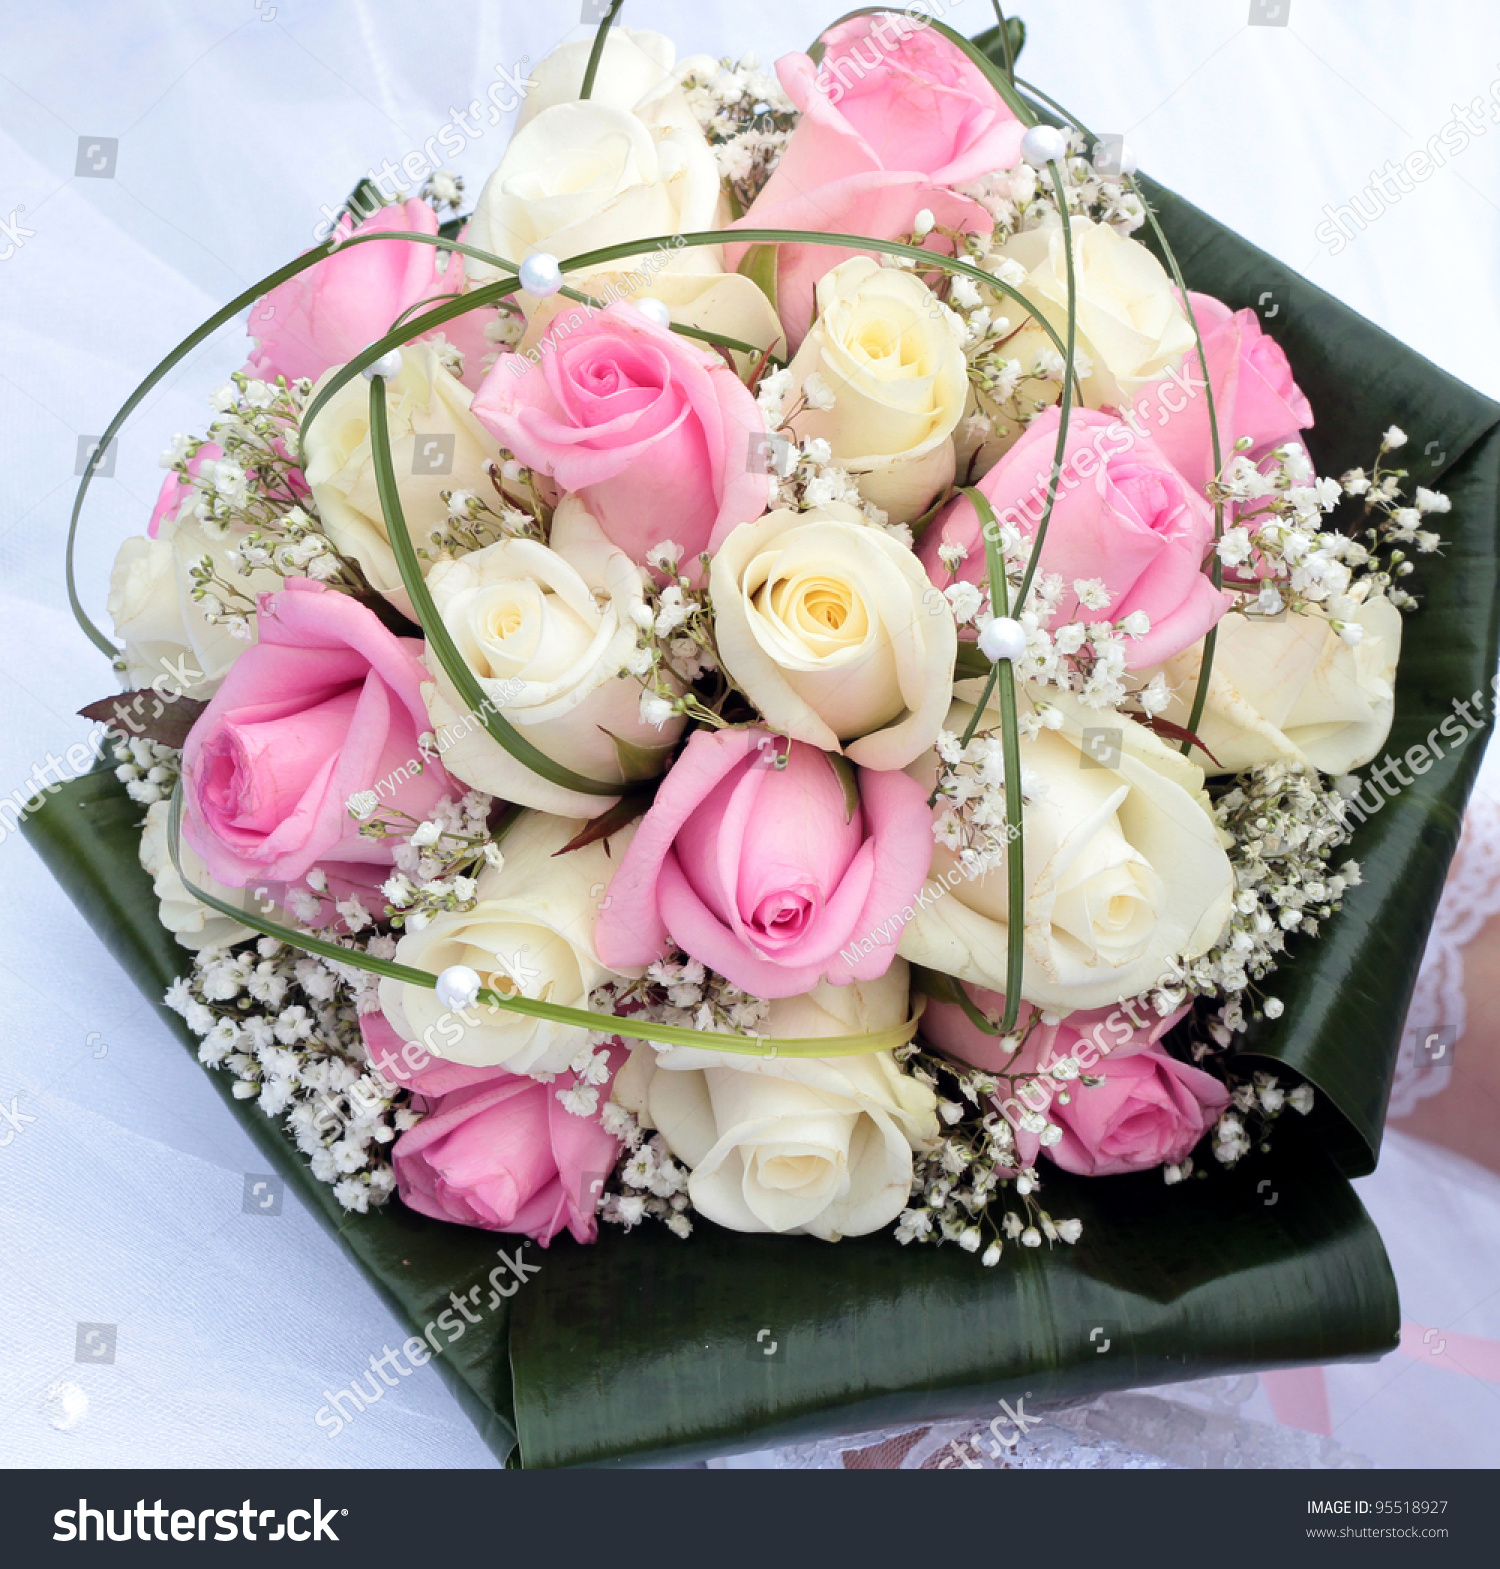 Bridal Bouquet With White And Pink Rose On Wedding Day Flowers